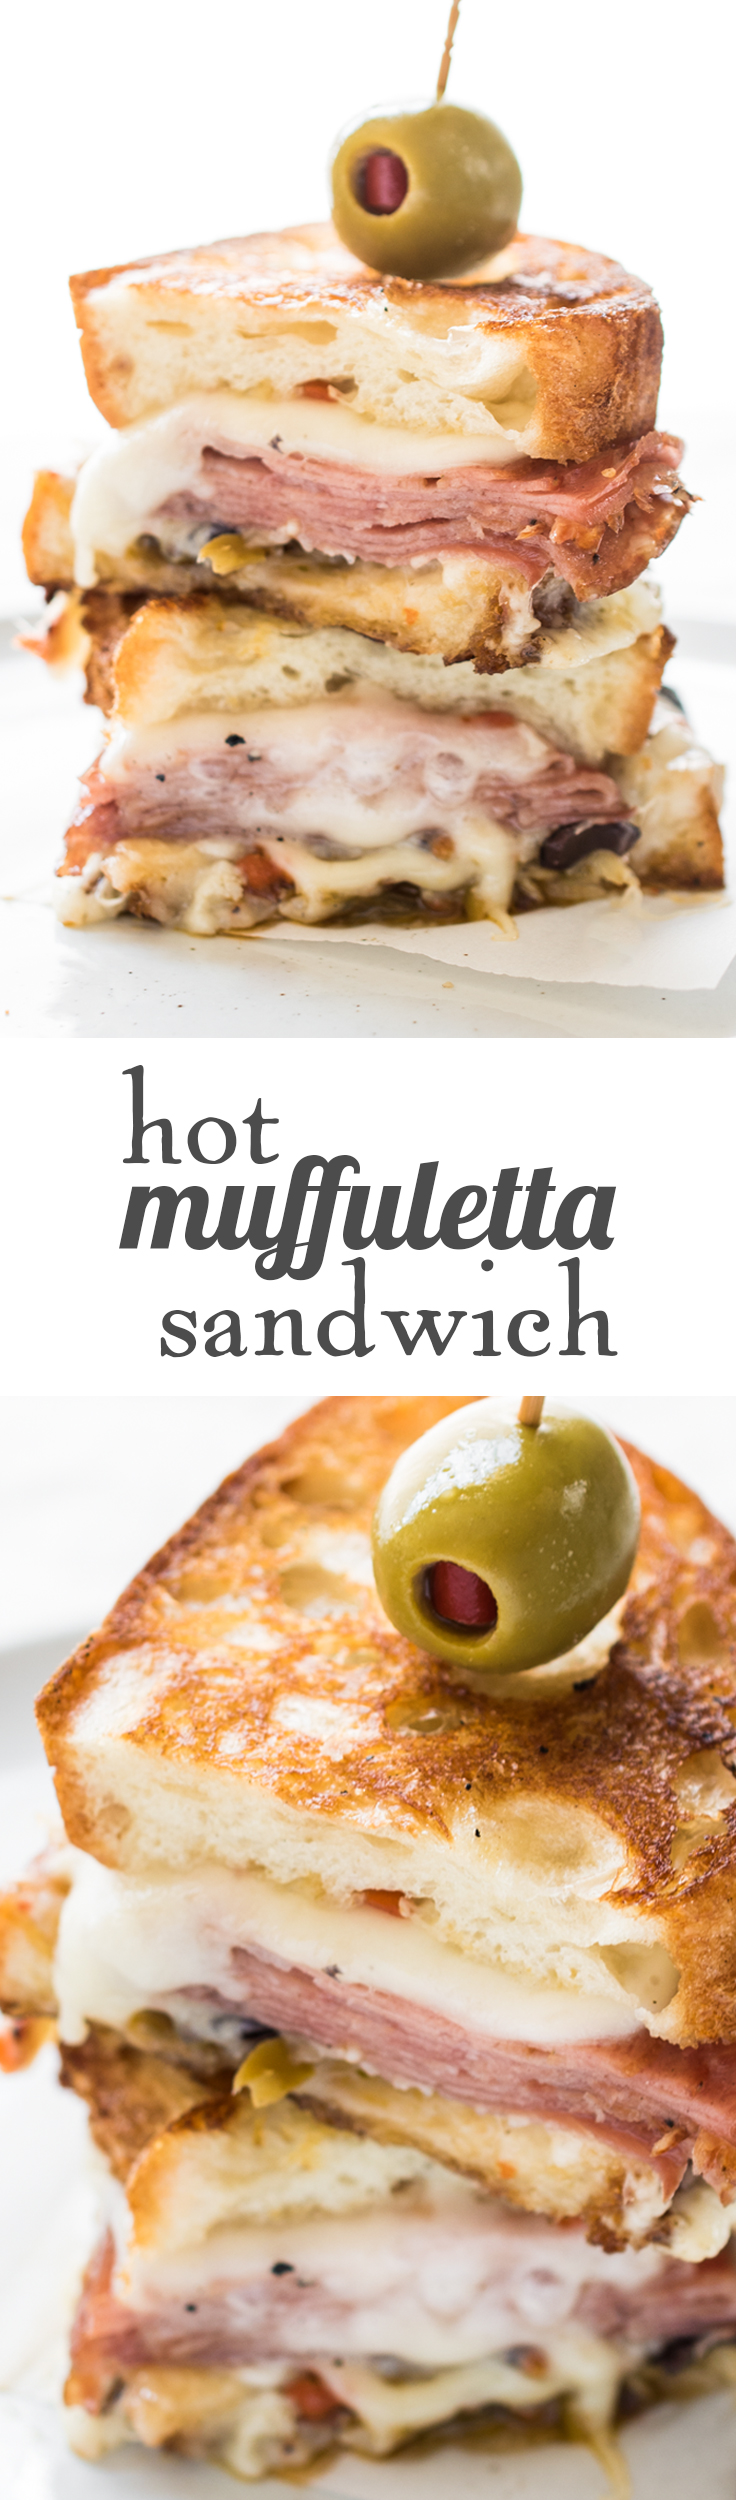 Hot Muffaletta Sandwich dripping with cheese and packed with punch!